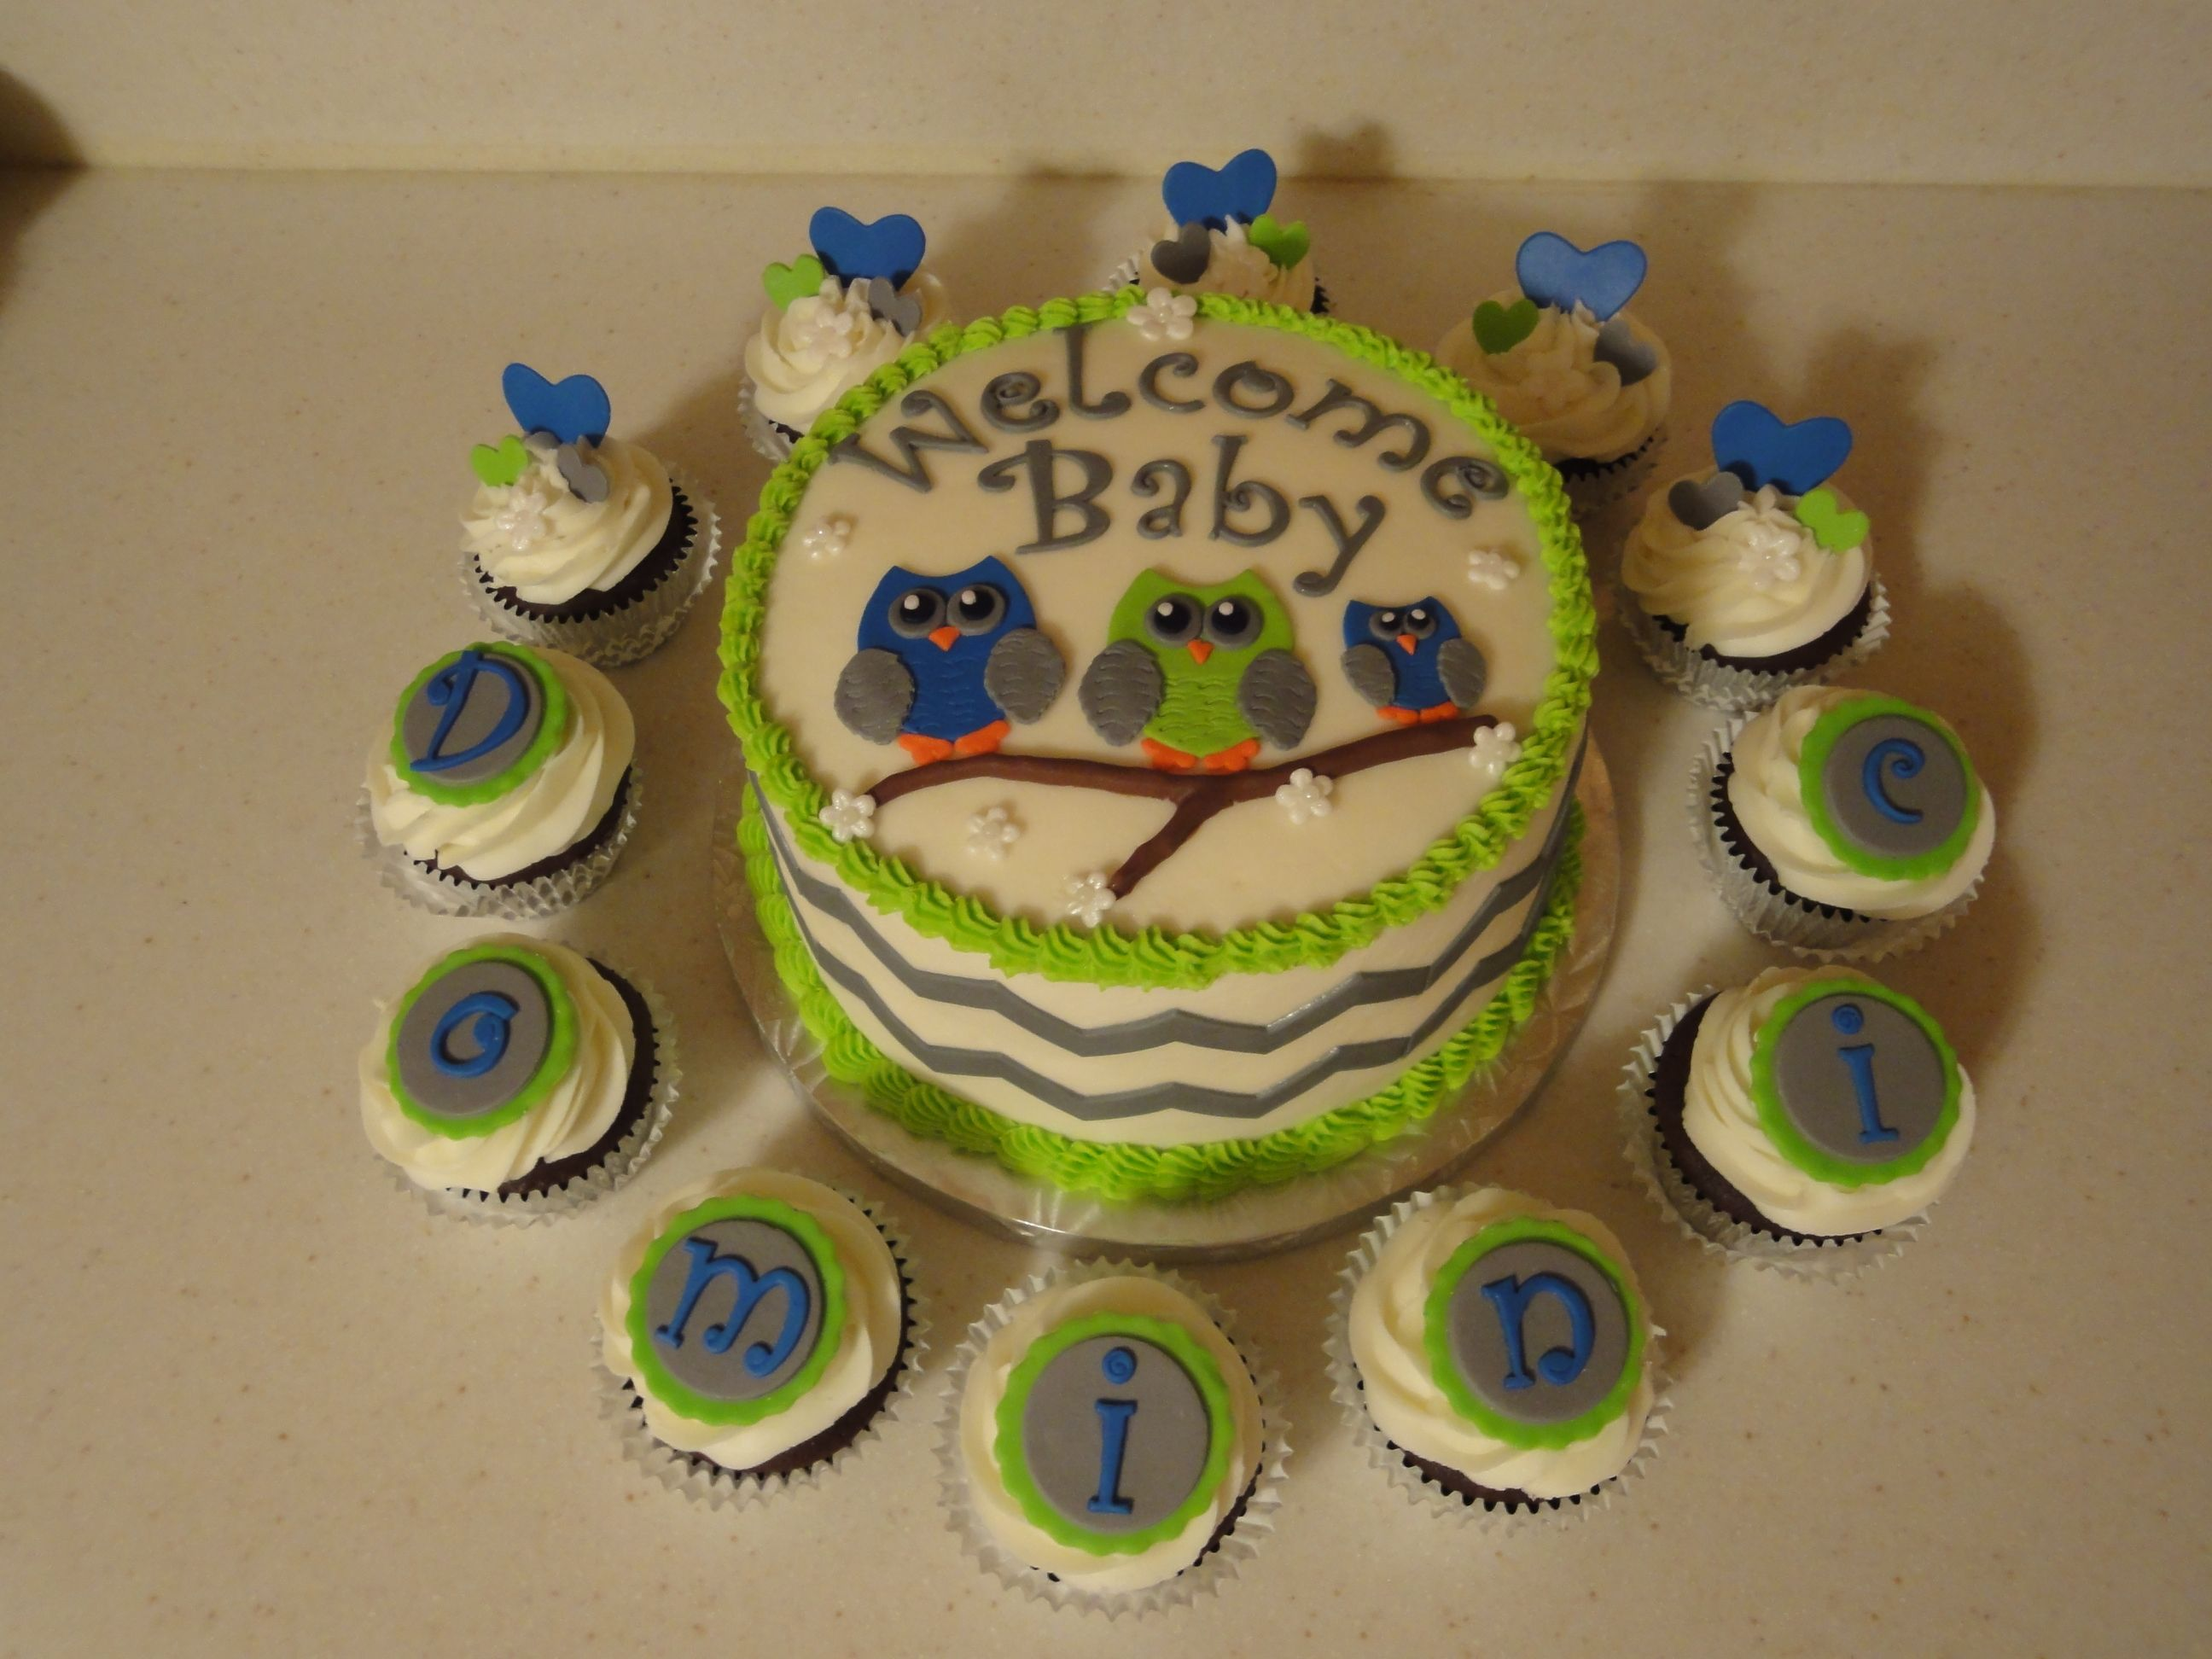 A Sweet Owl Baby Shower Cake With Coordinating Cupcakes Spelling